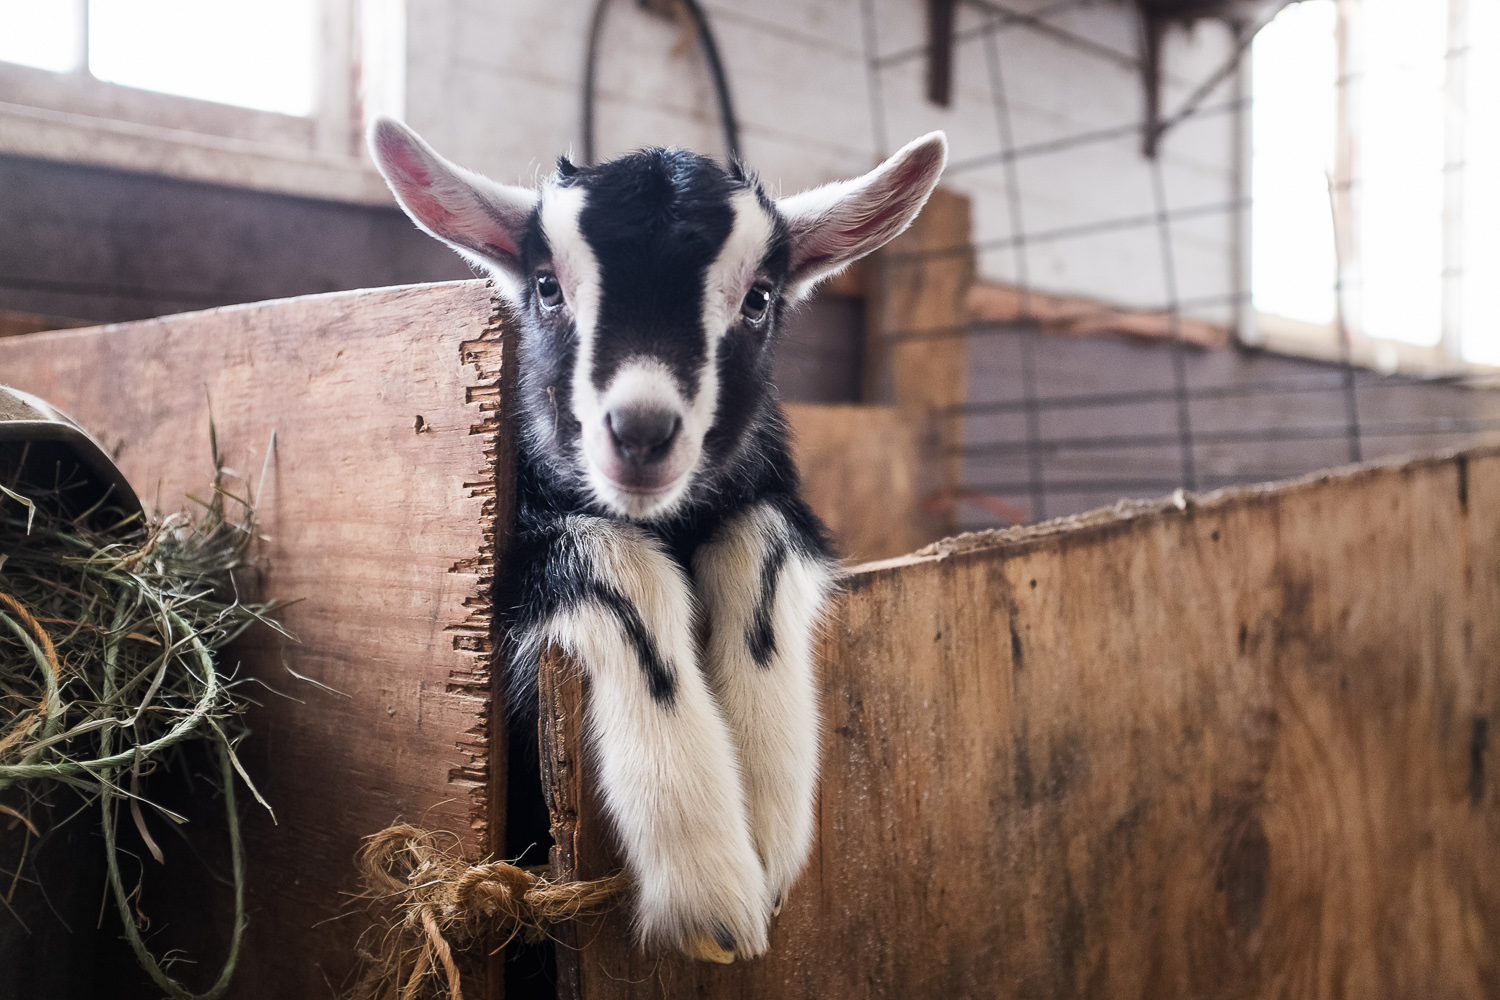 A 2 week old baby goat. Cute overload.